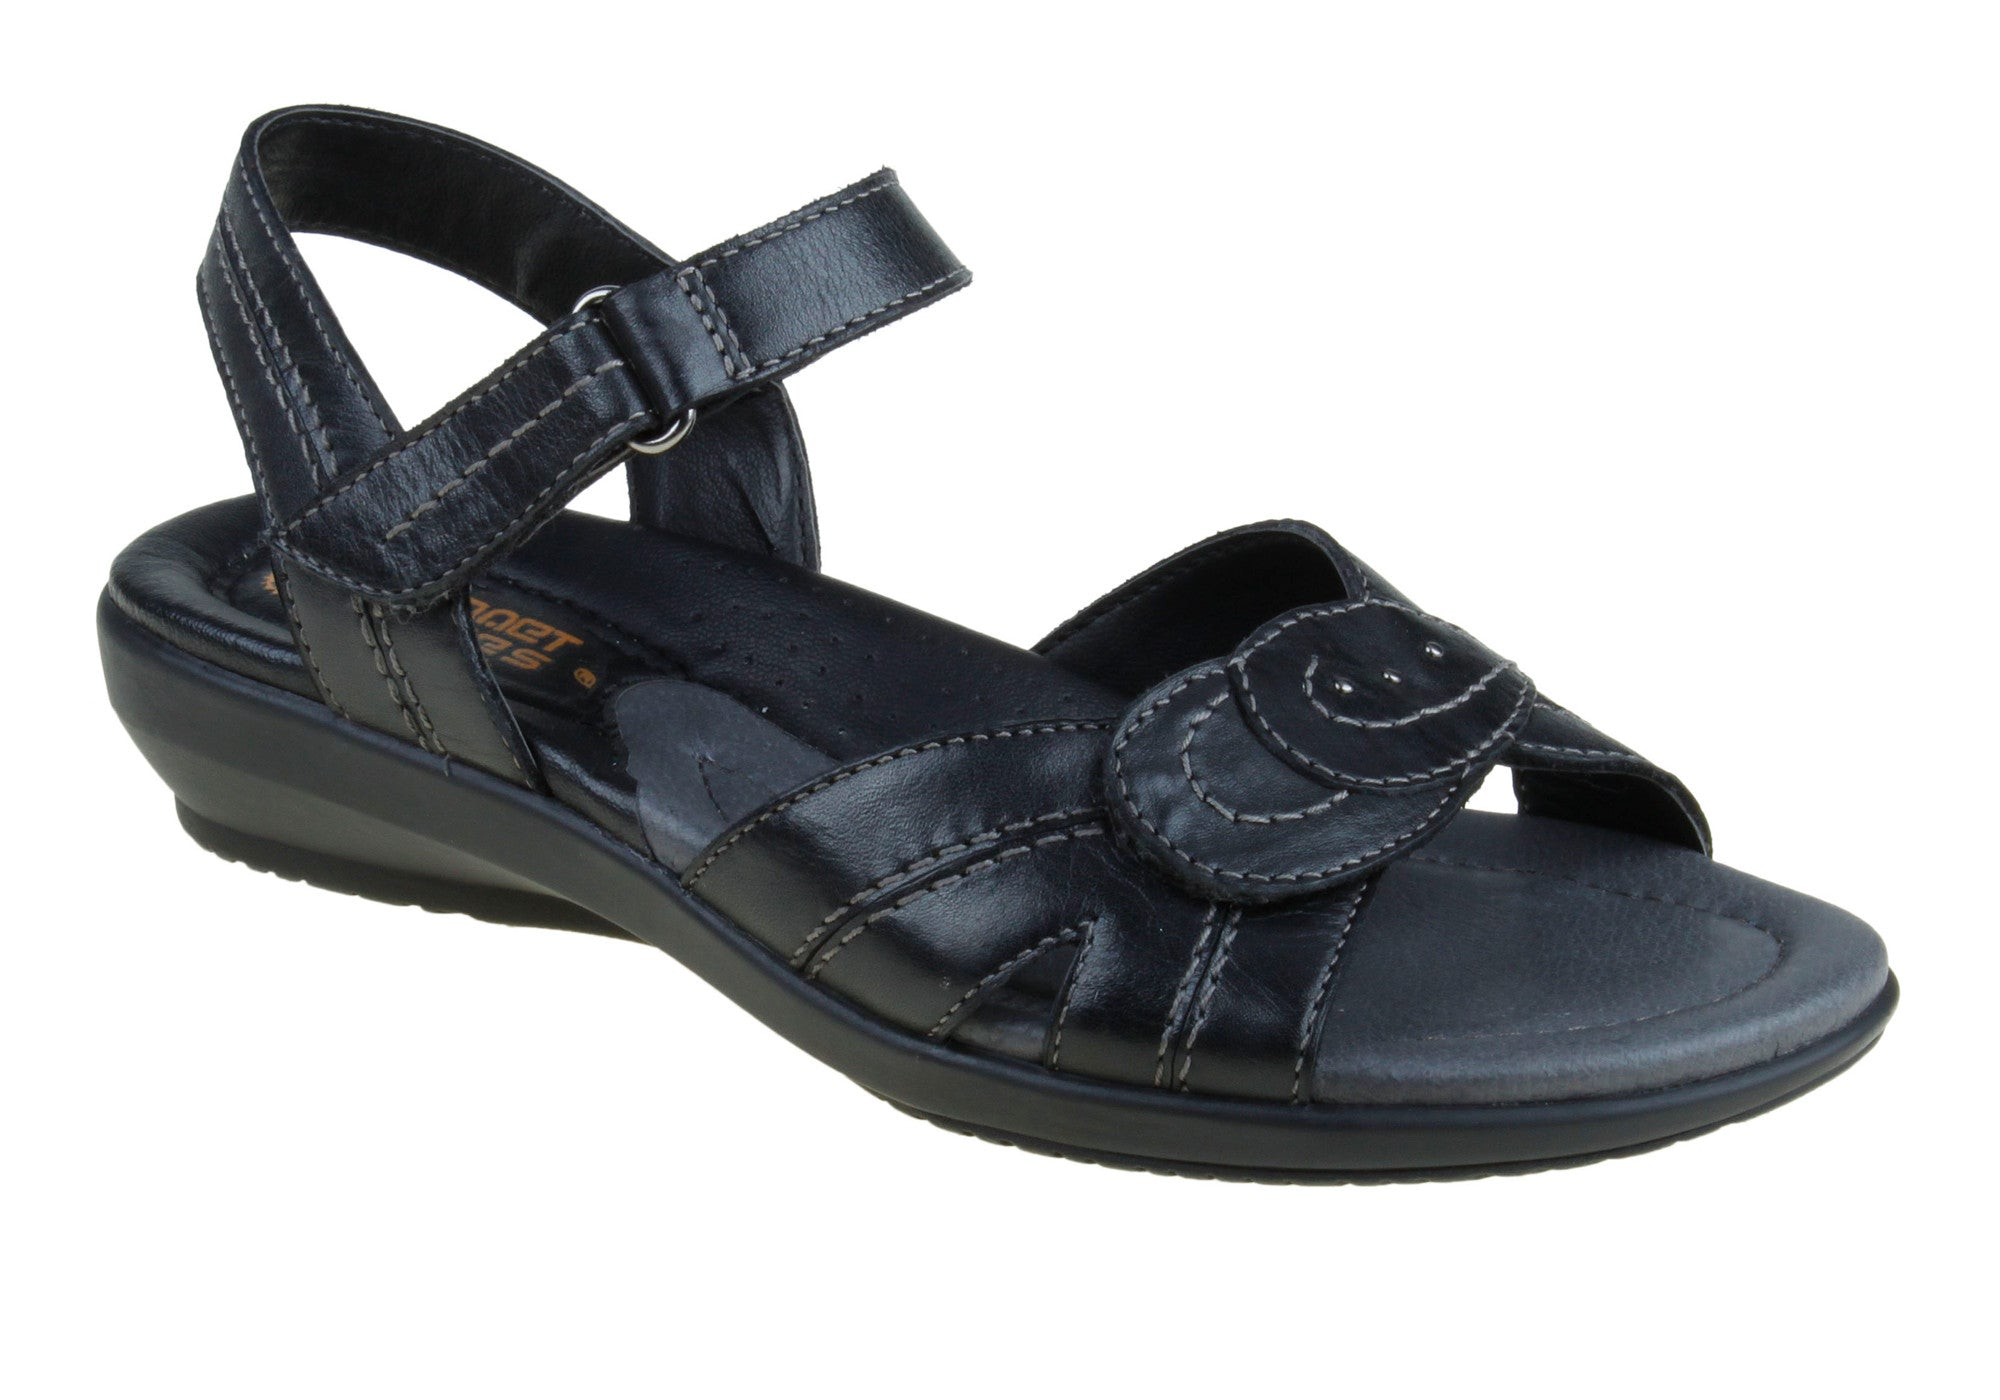 baadfbc1357 Brand New Planet Shoes Flag Womens Leather Comfortable Sandals